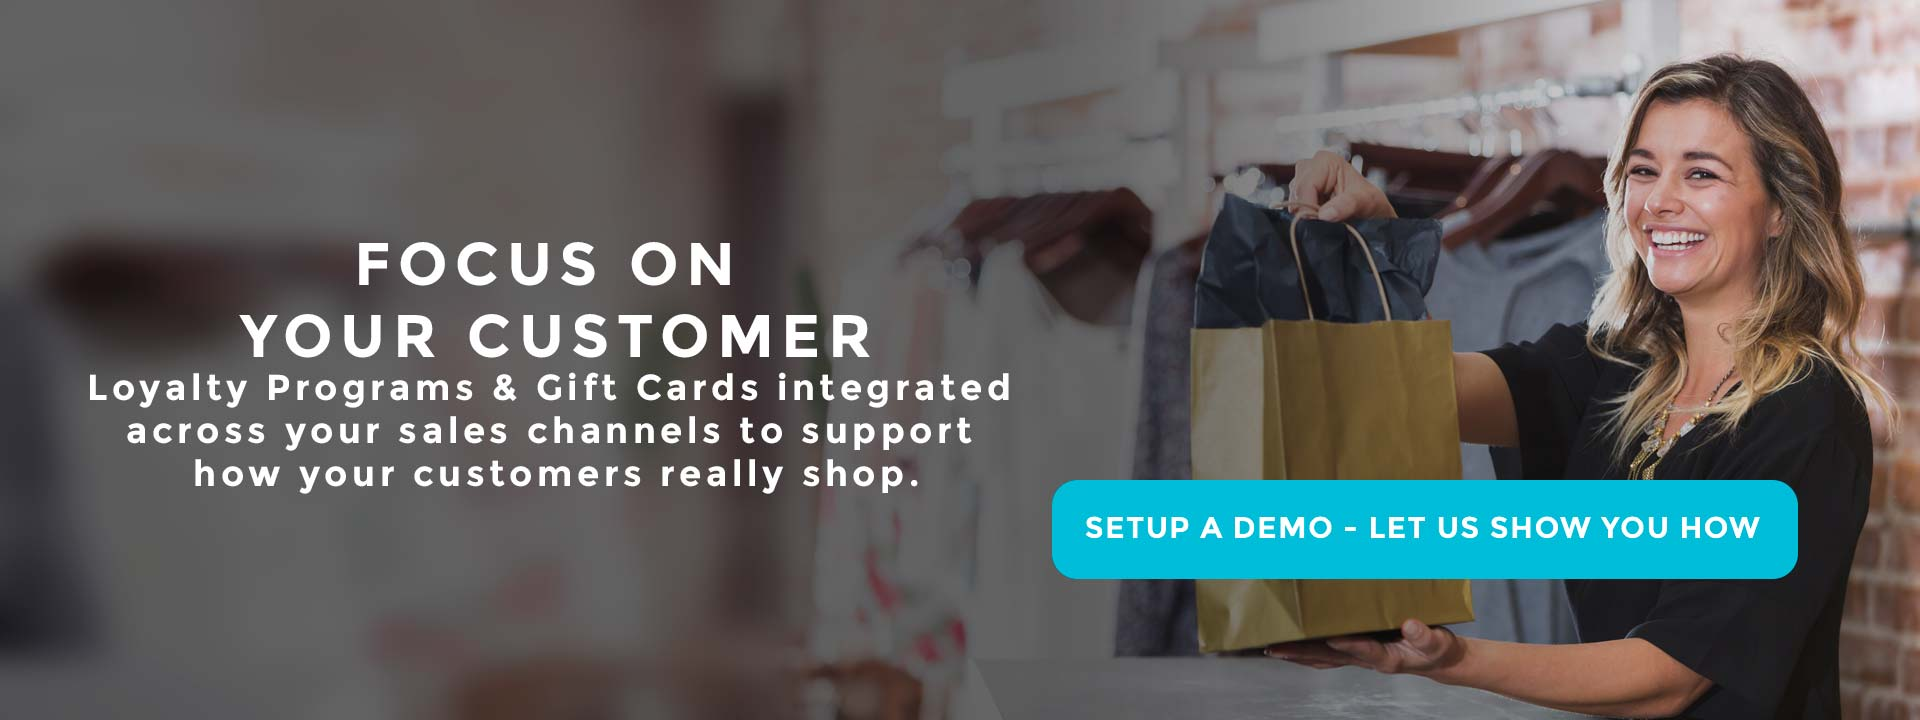 Omni Channel Commerce lets you Focus on Your Customer